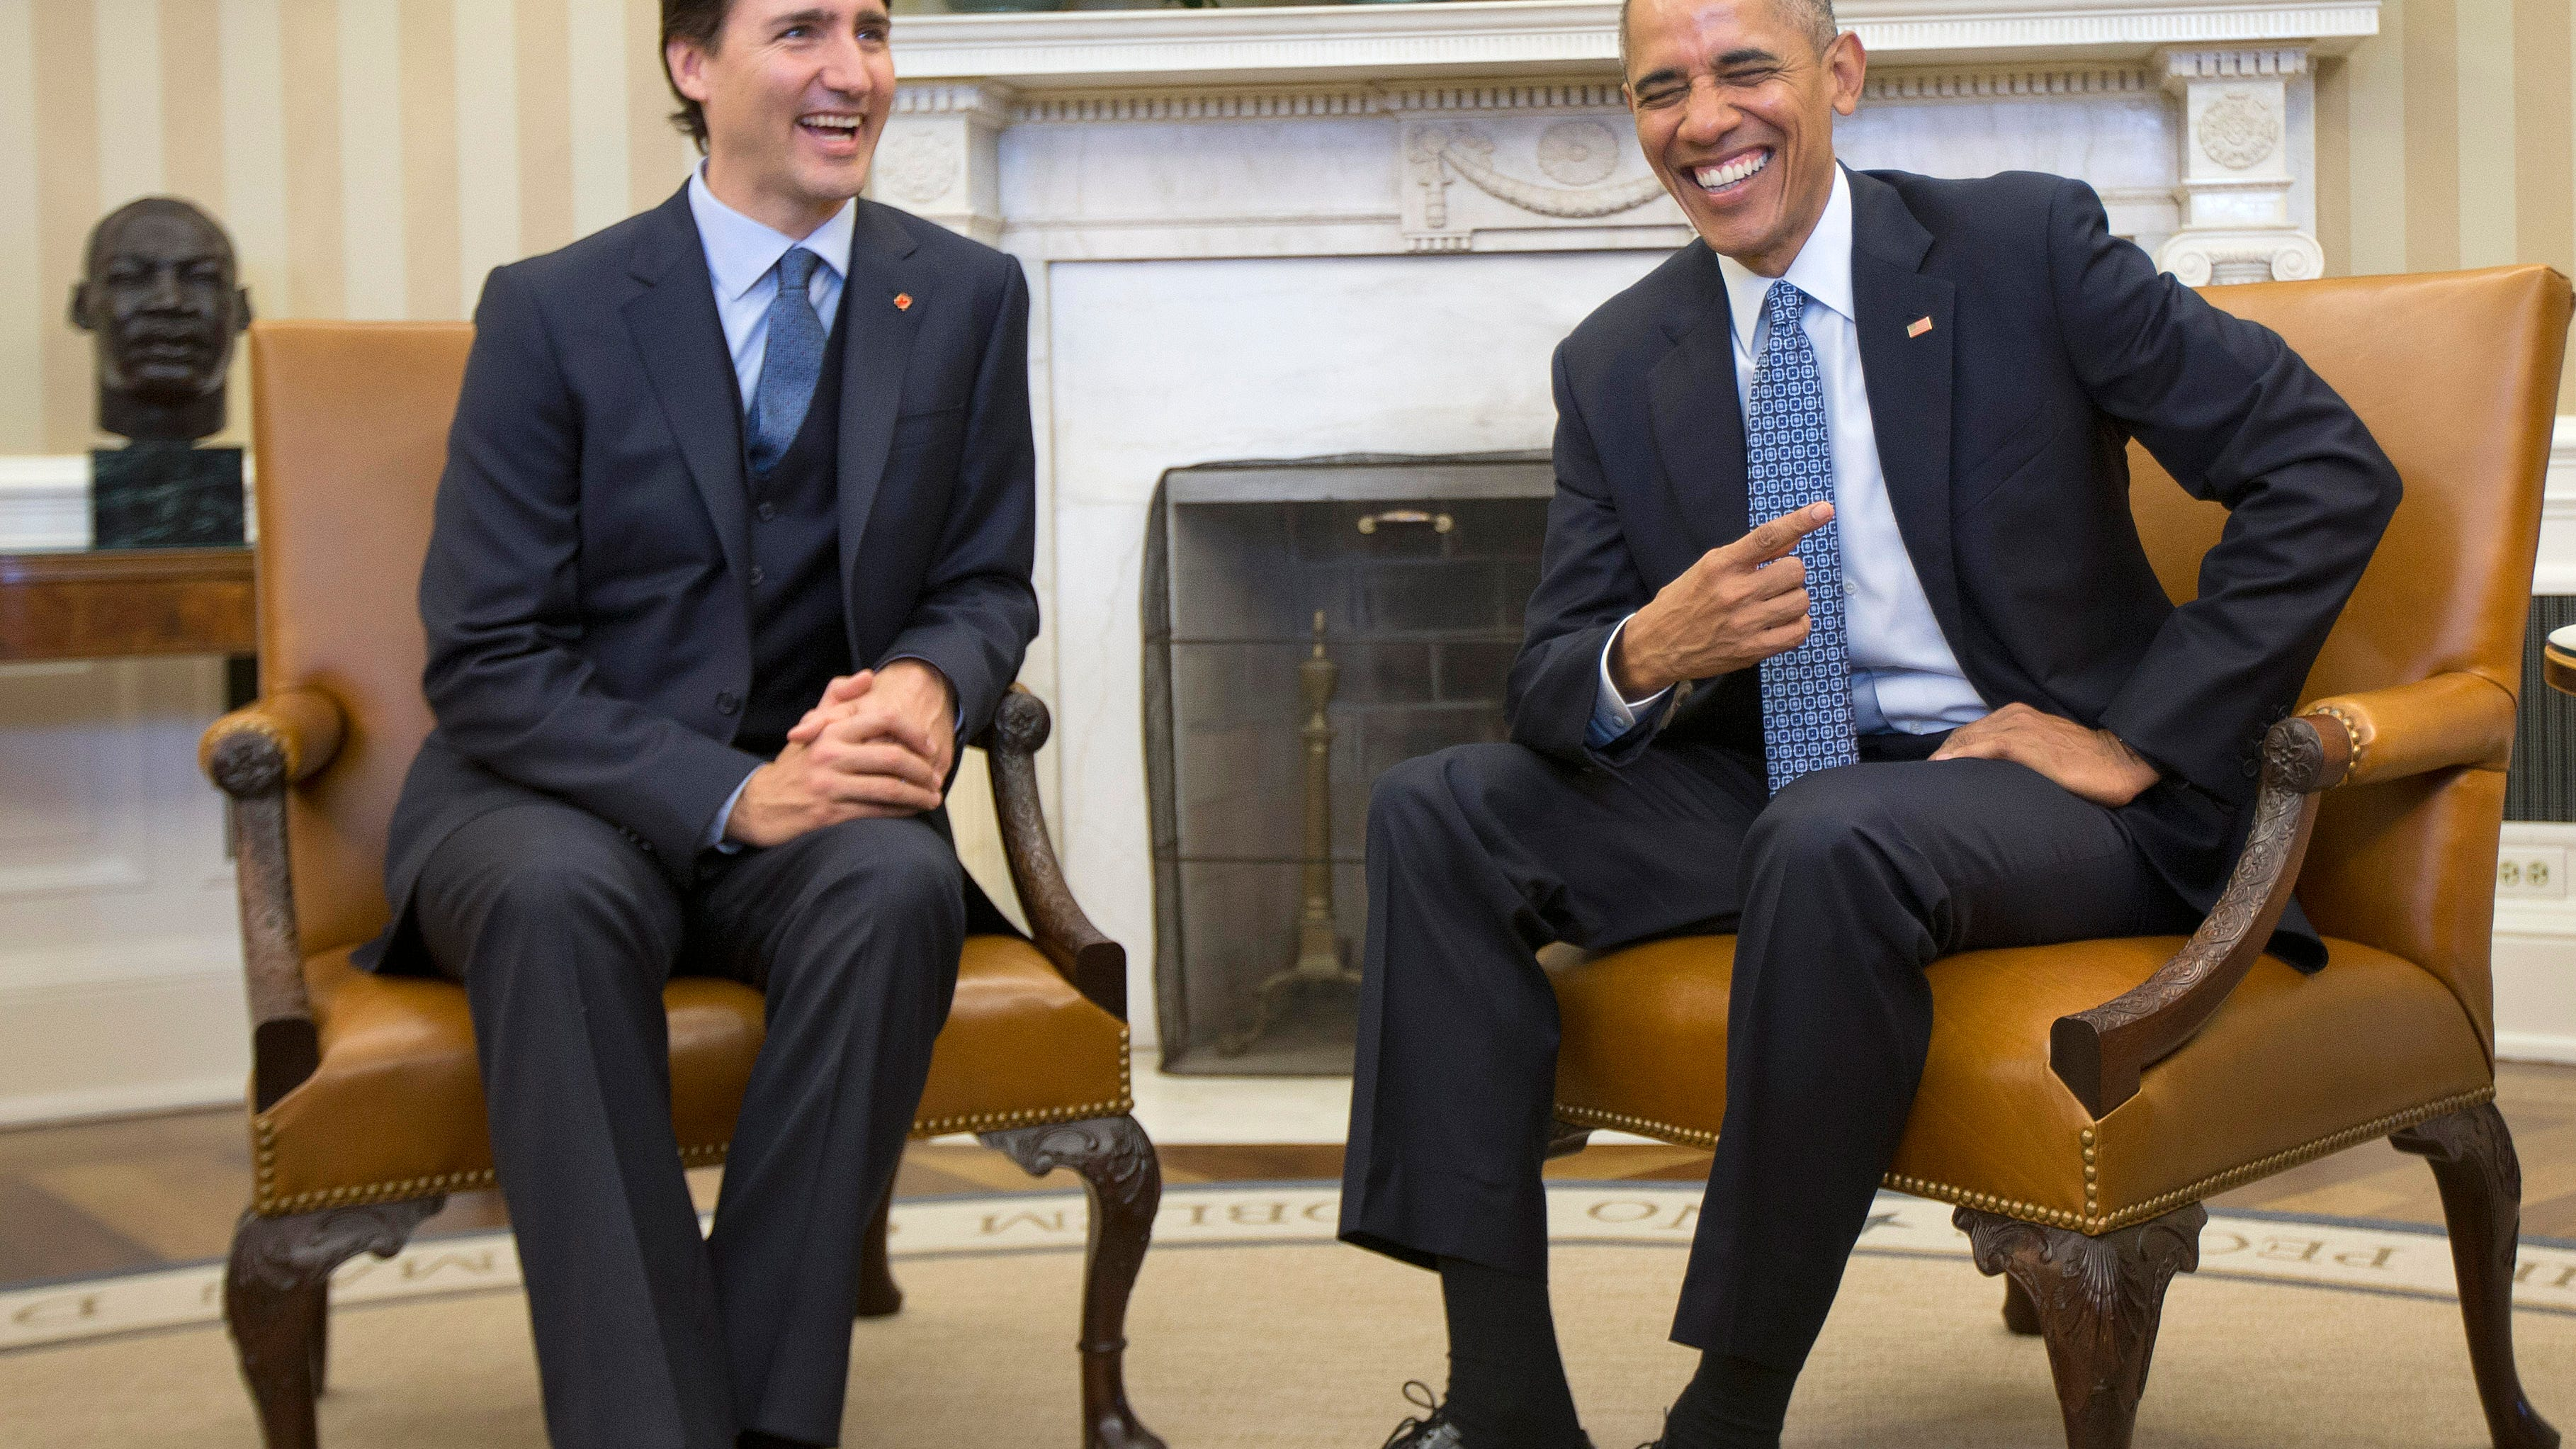 Obama endorses Trudeau in the Canadian election